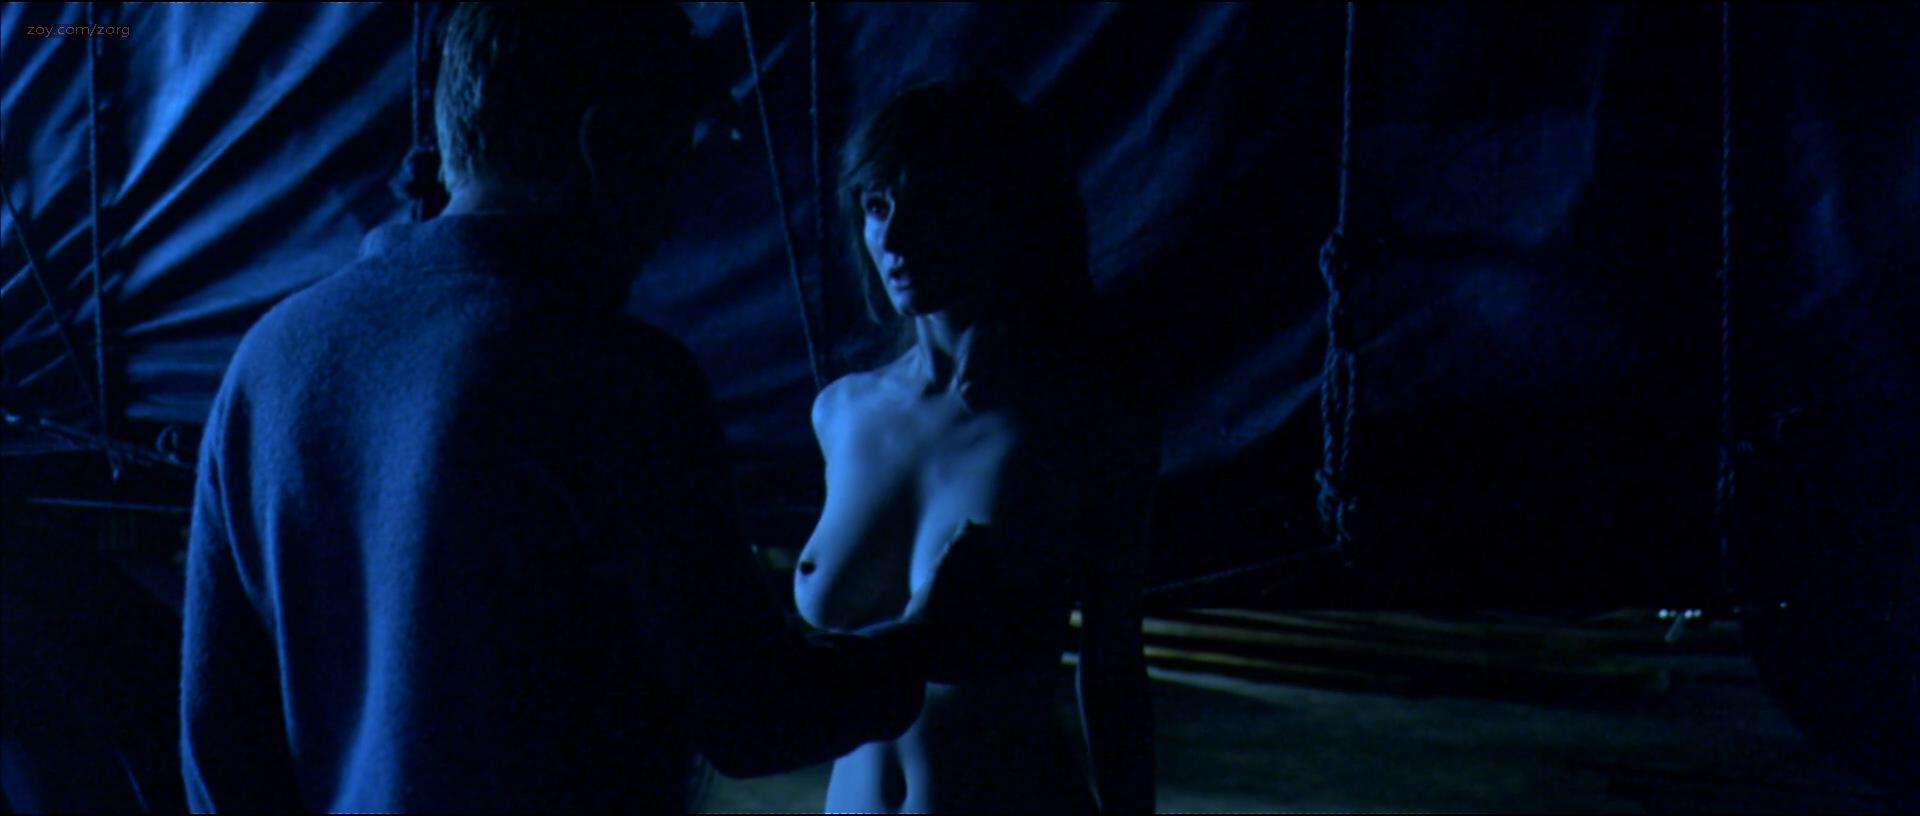 This Emily mortimer full frontal nudity very